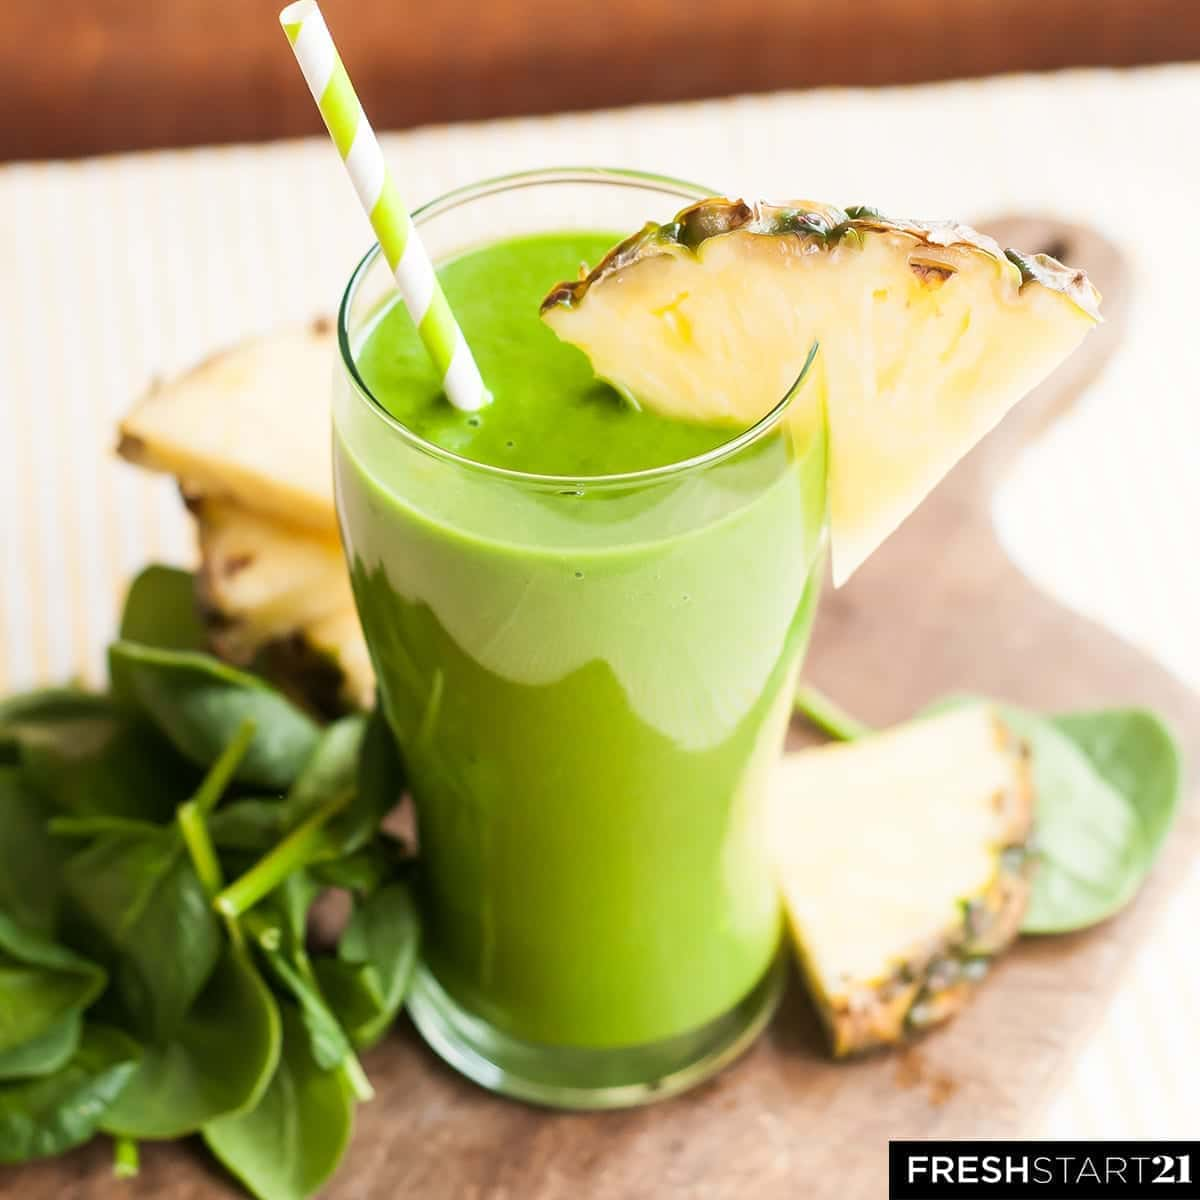 Tropical Skin Cleanser Green Smoothie from the Fresh Start 21 Cleanse